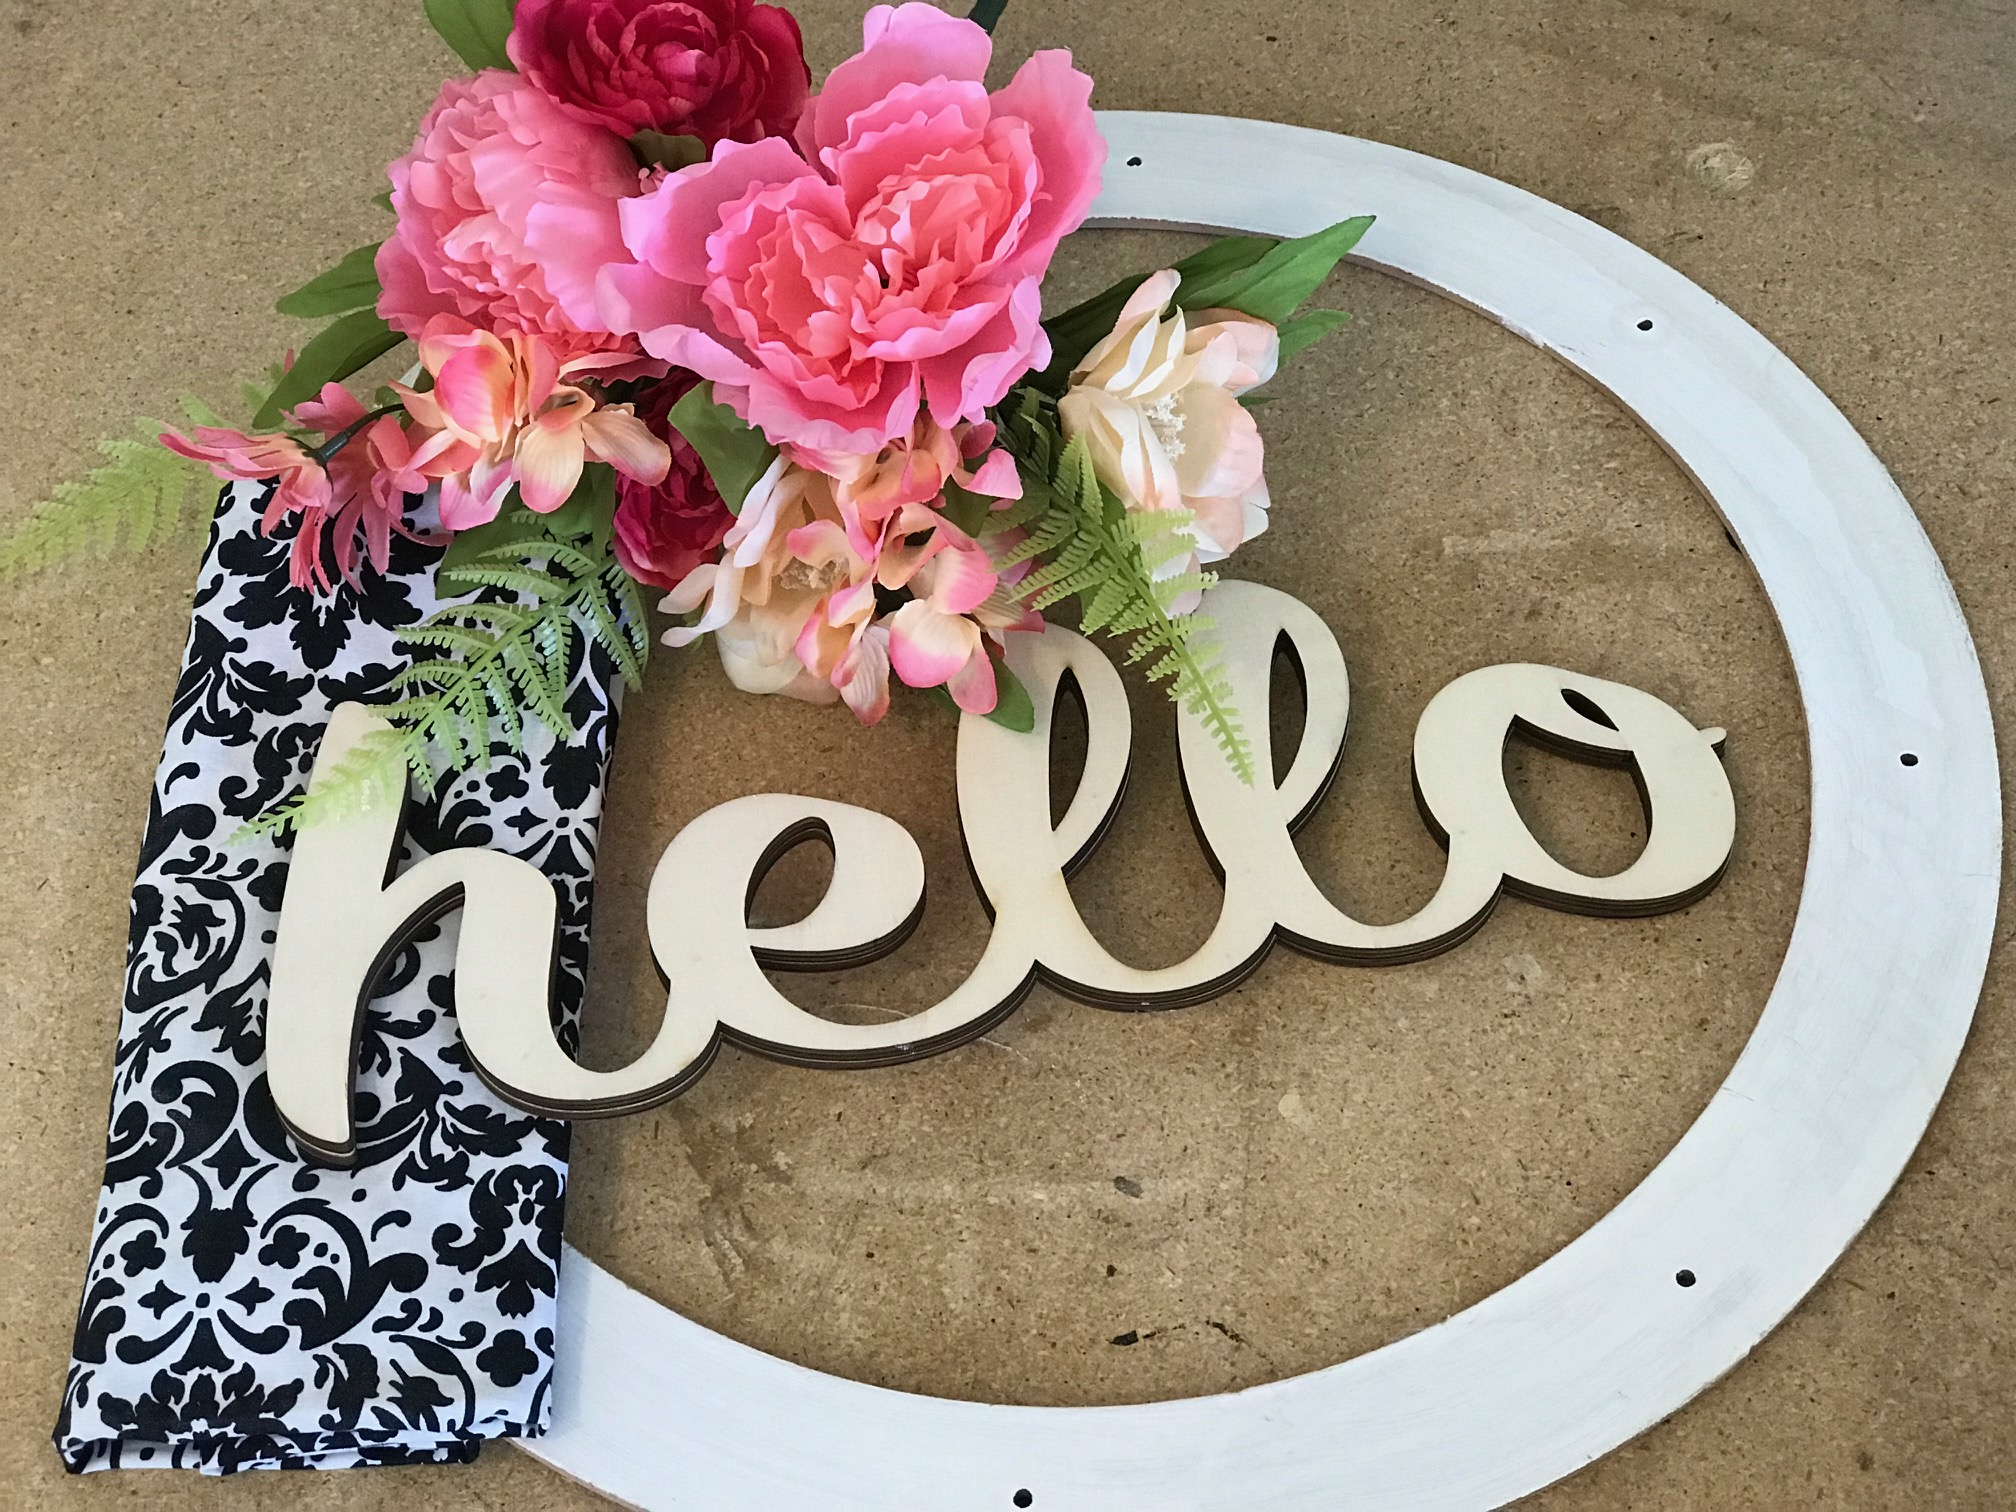 Quick and Easy HELLO Wreath supplies